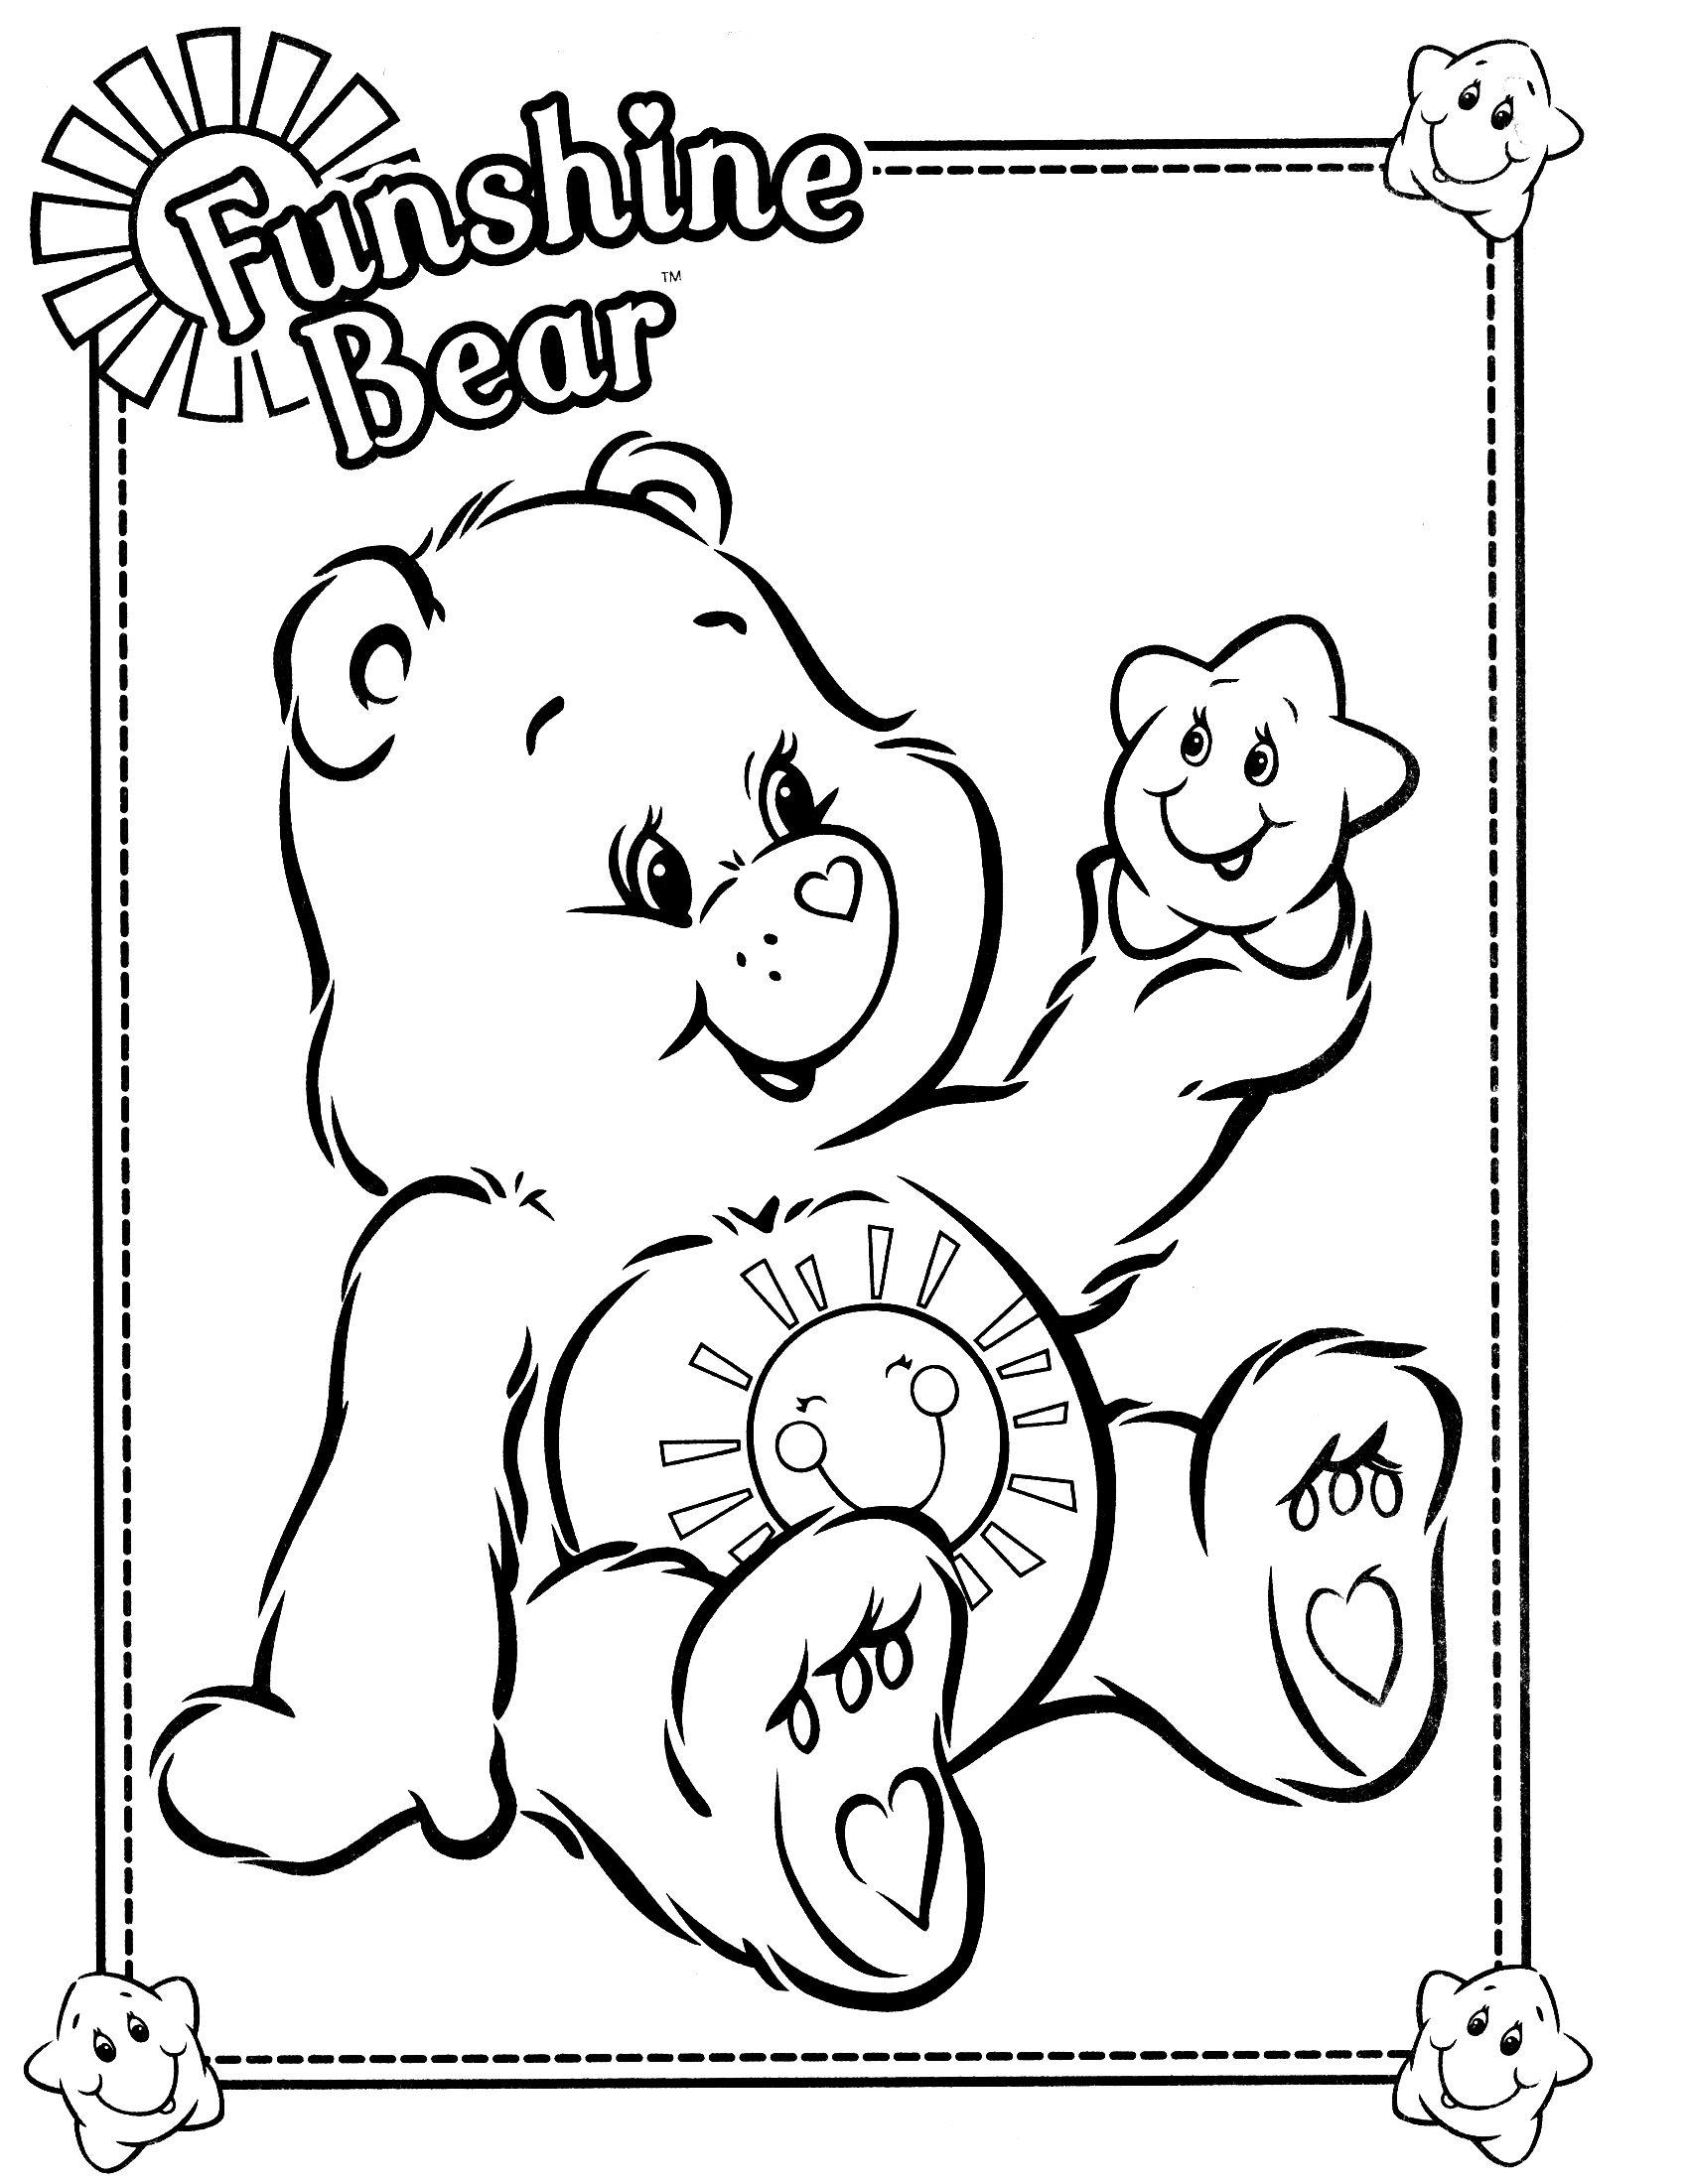 carebear coloring pages - photo#31